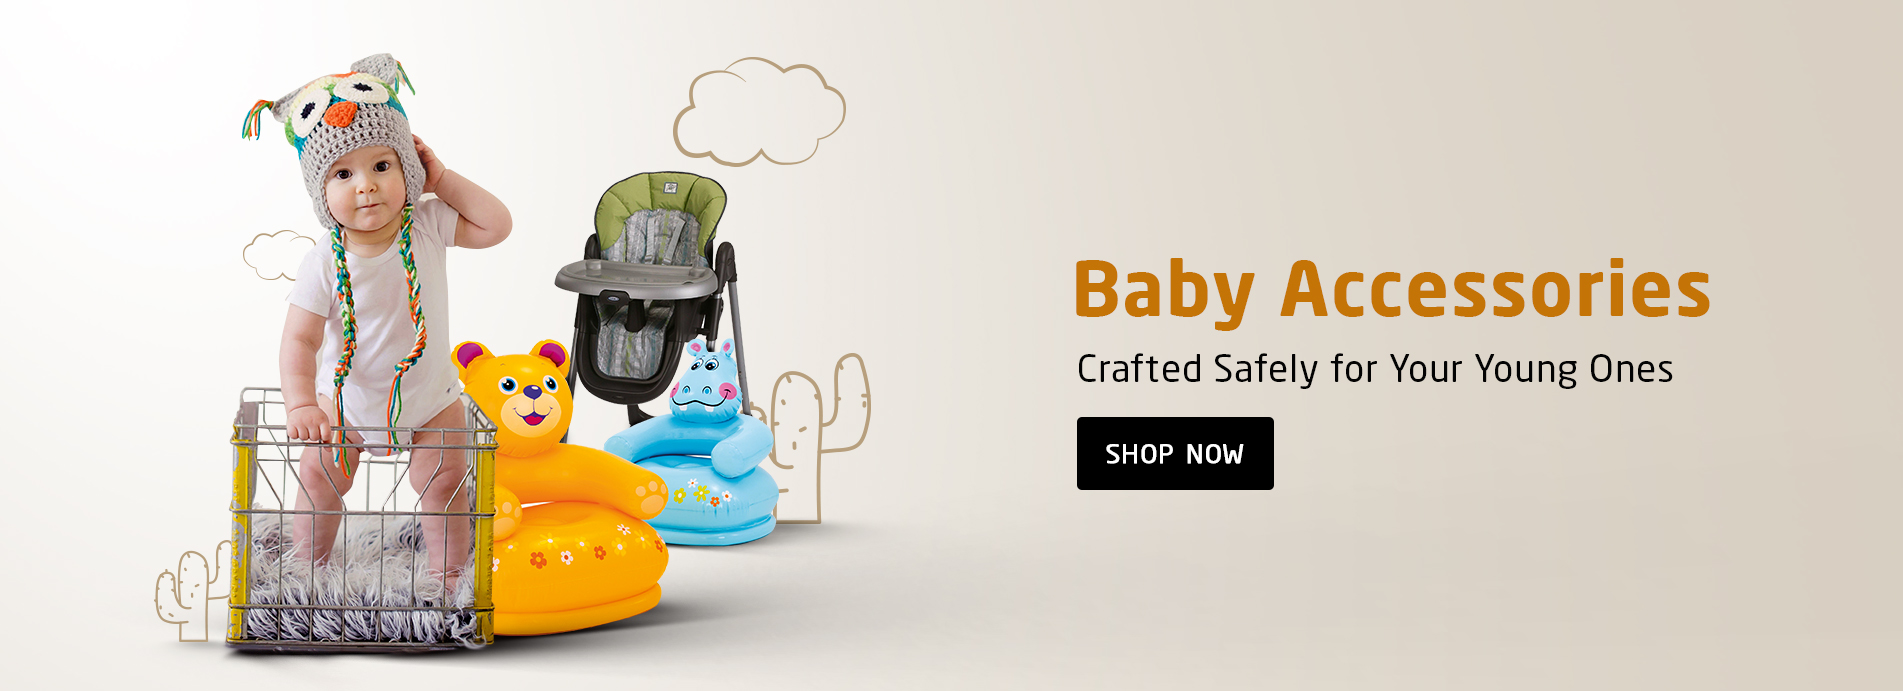 babyaccesories1903x691.jpg